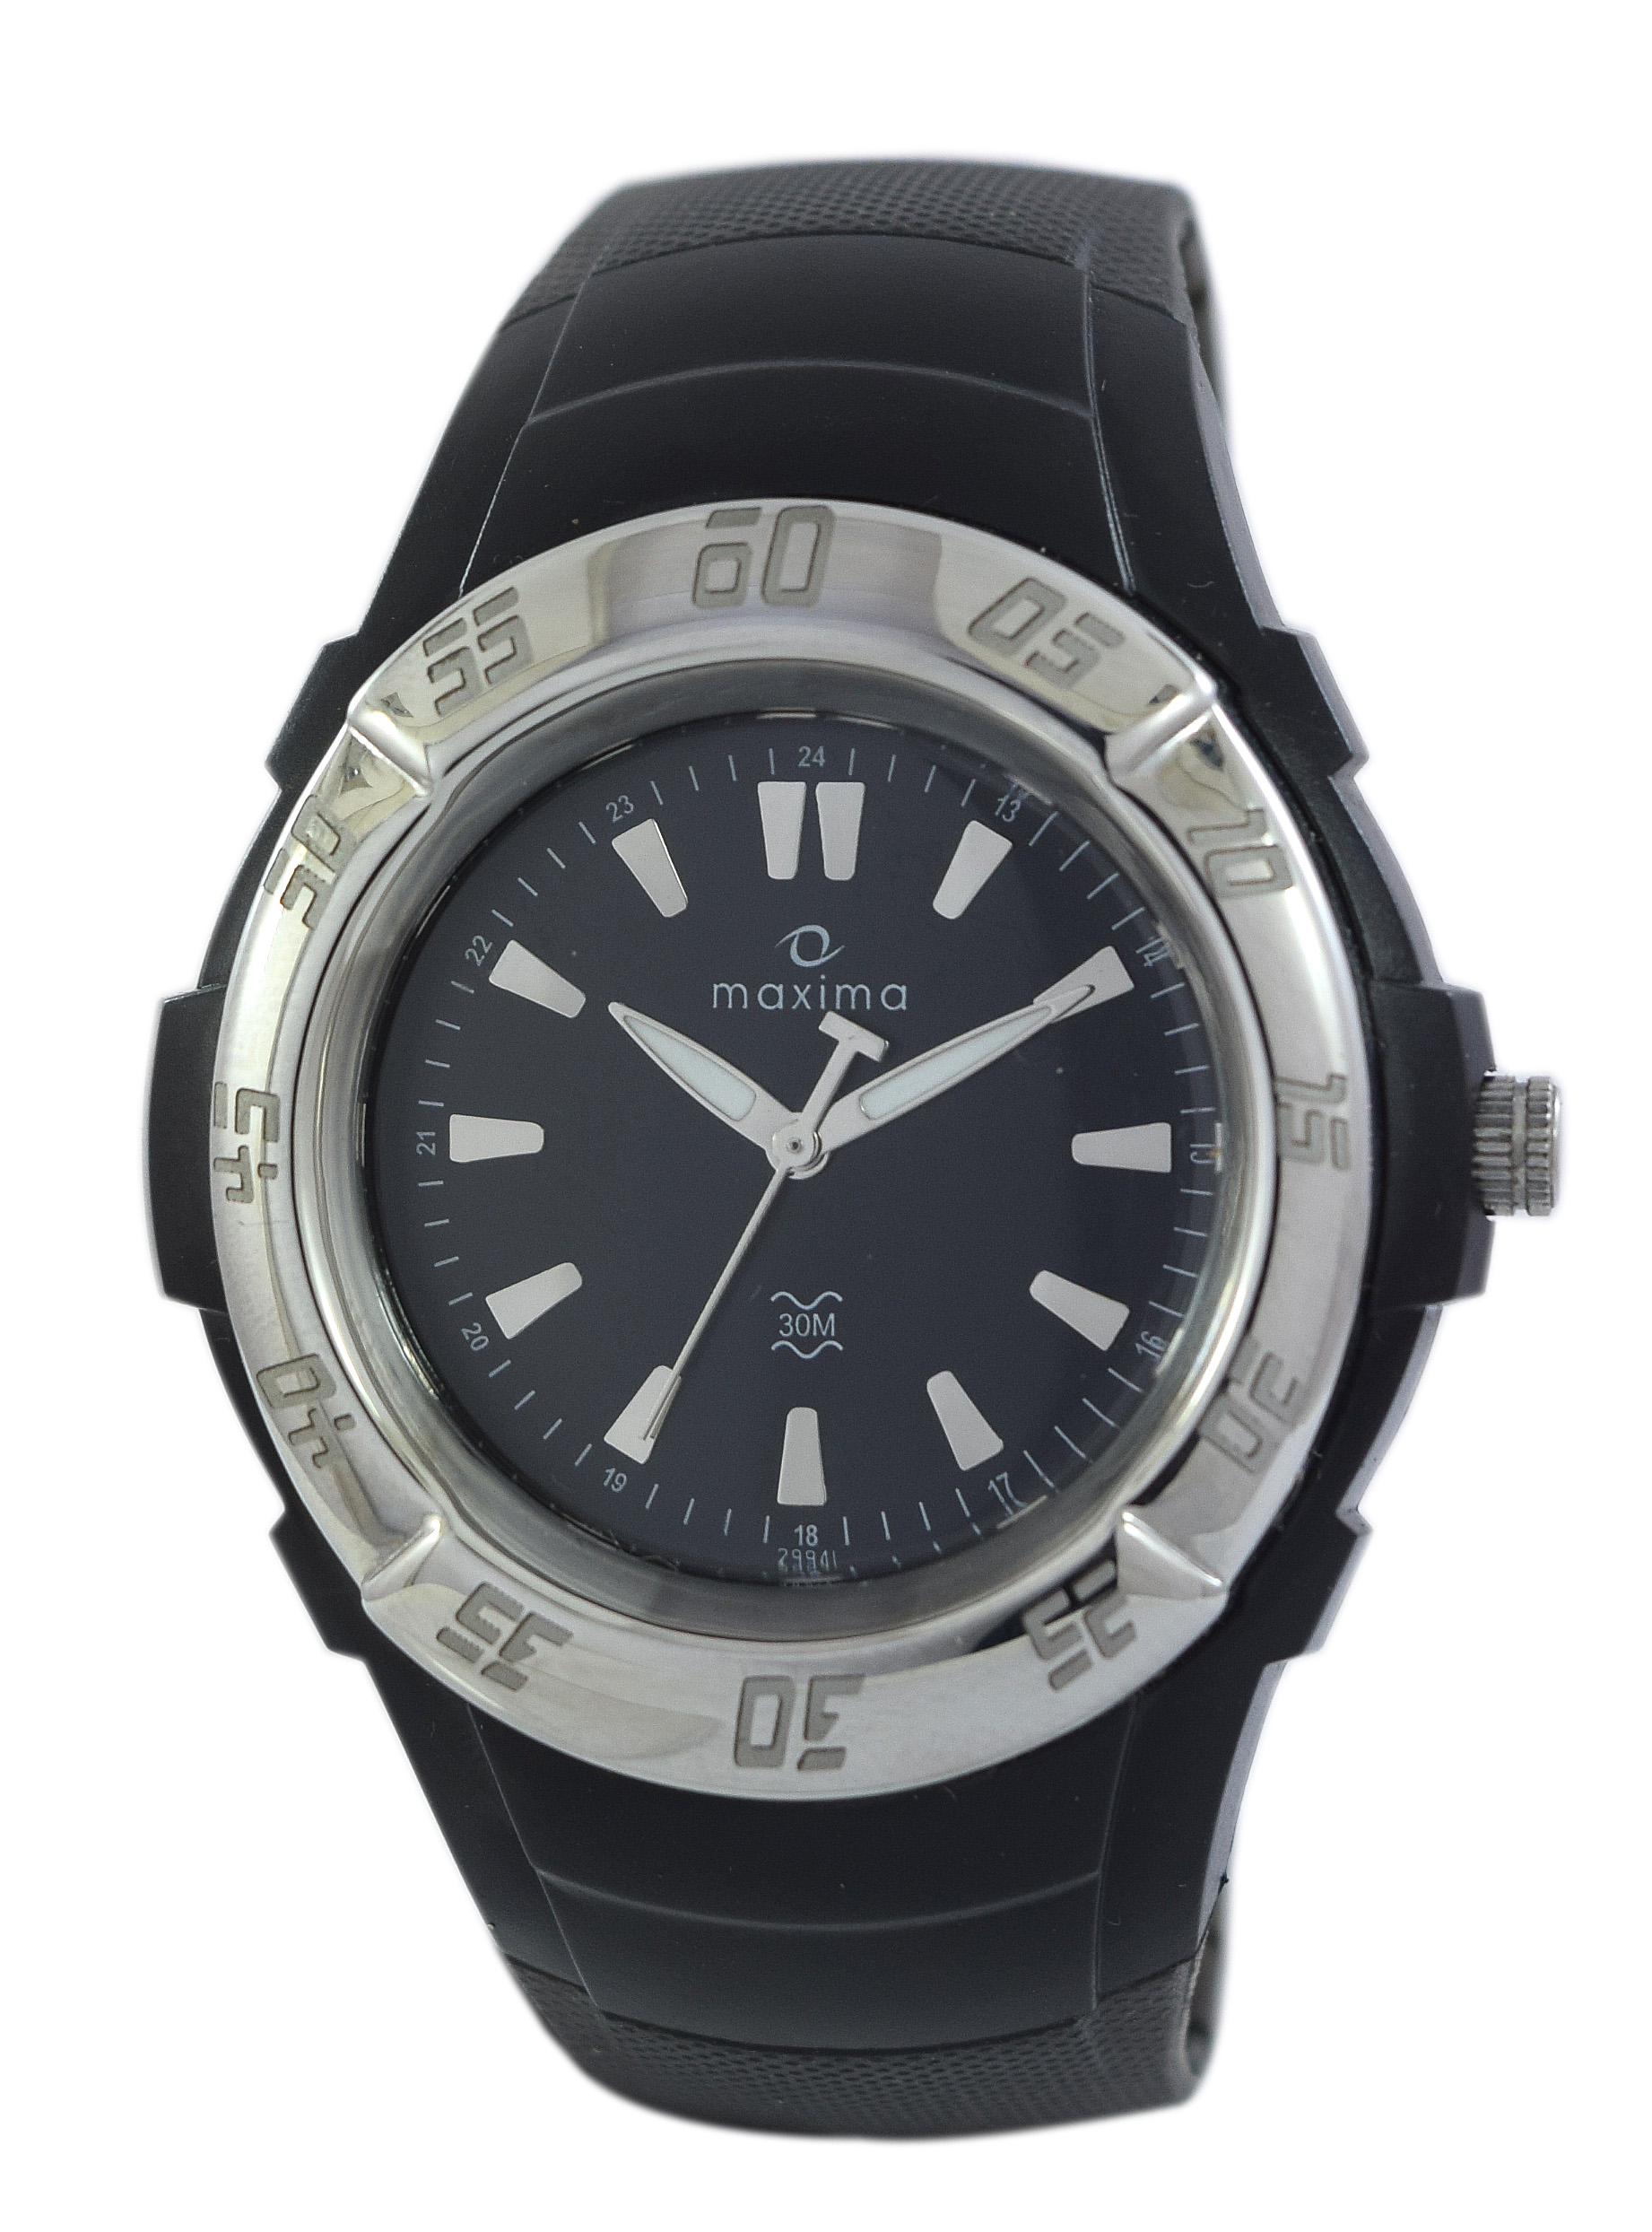 maxima watches for prices